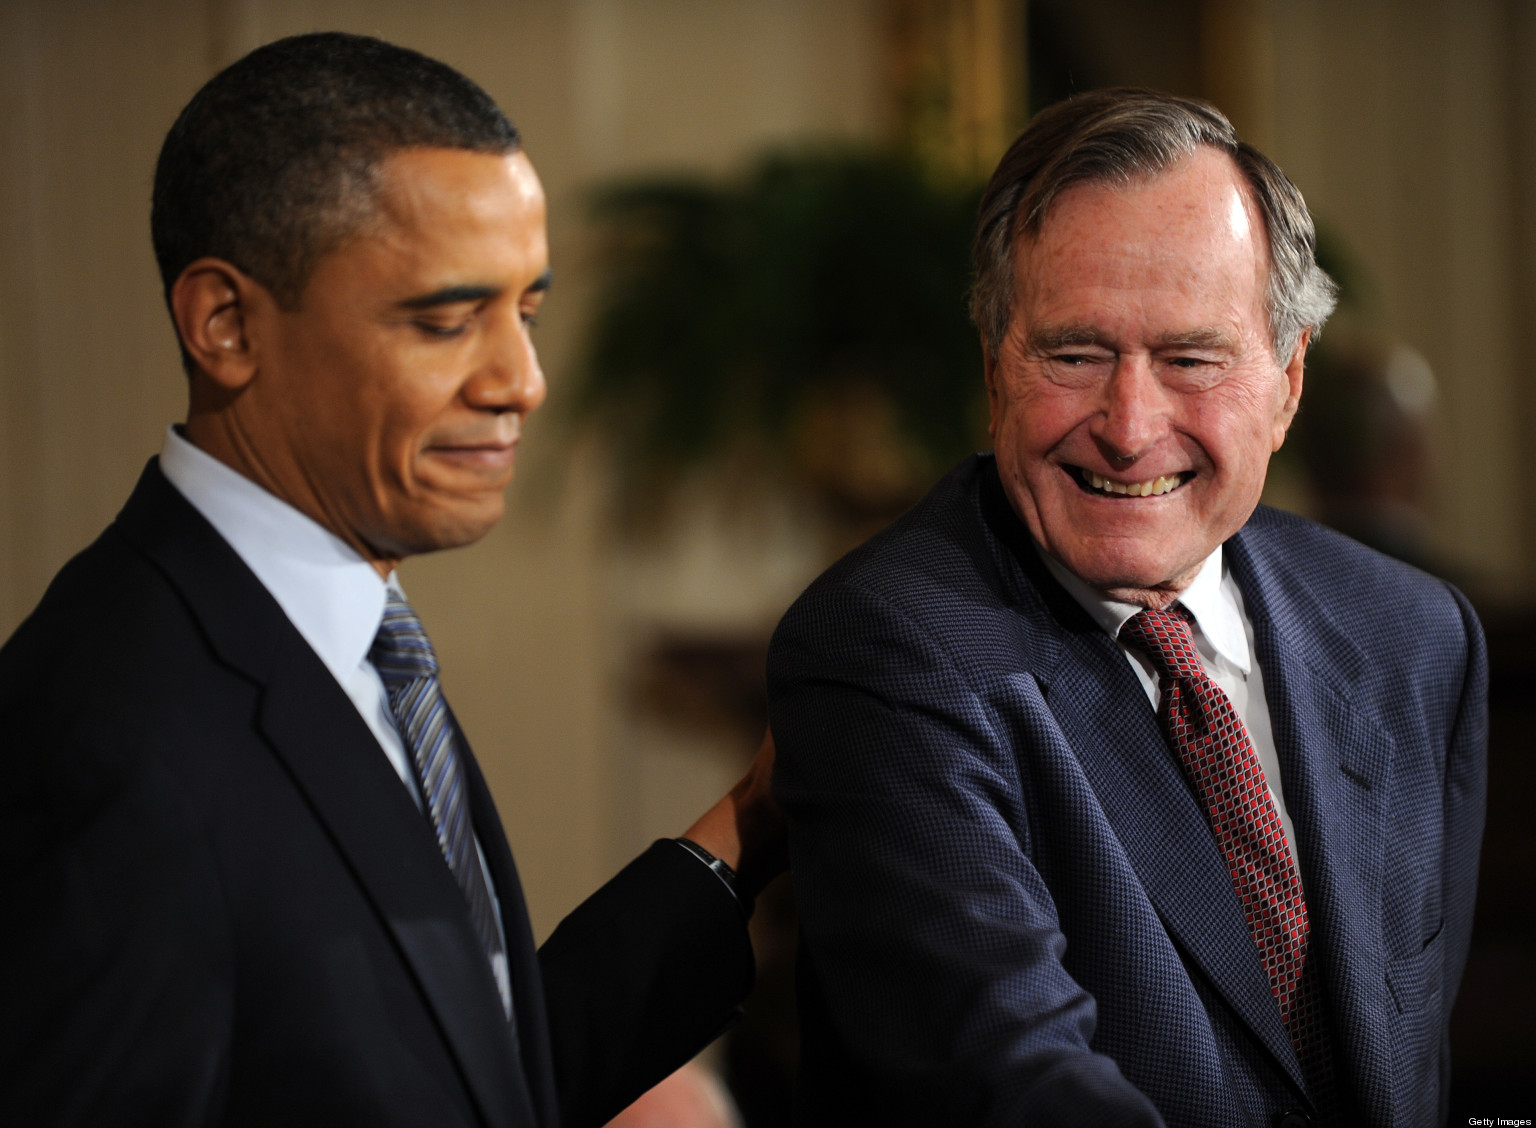 Obama To Name Volunteer Fund After George H.W. Bush